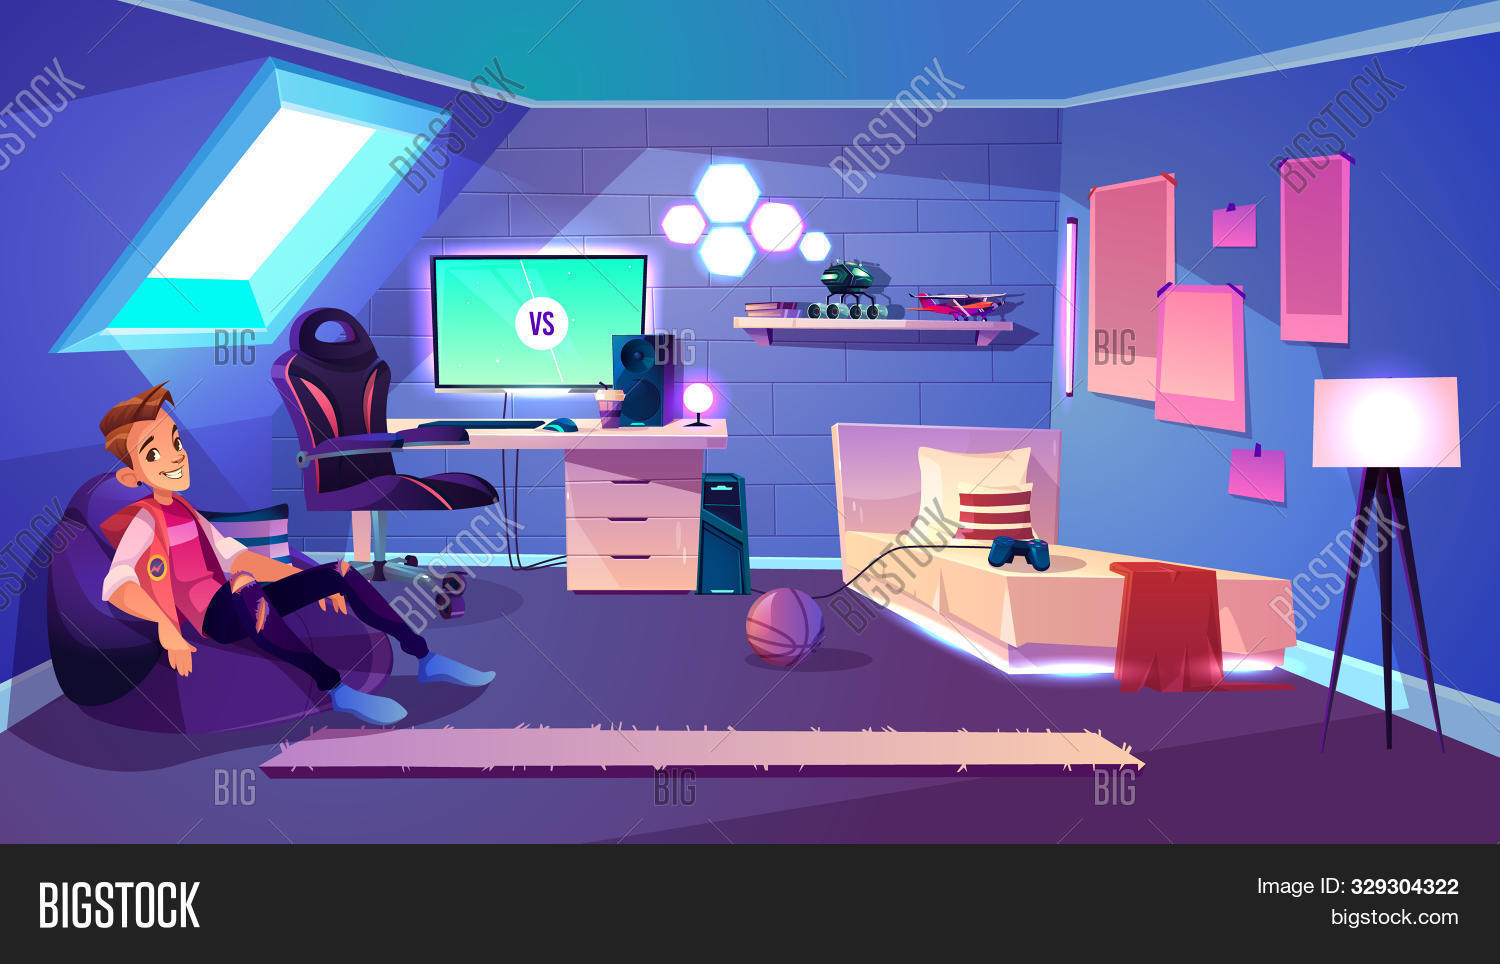 armchair,attic,background,ball,bed,blogger,boy,cartoon,chair,comfort,computer,concept,console,cozy,cyber,cybersport,desk,enthusiast,esport,fan,furniture,game,gamepad,gamer,gaming,illustration,indoors,interior,lamp,male,monitor,night,pc,placard,pro,rest,roof,room,screen,shelf,sit,sportsman,streamer,table,teen,teenager,toy,tv,window